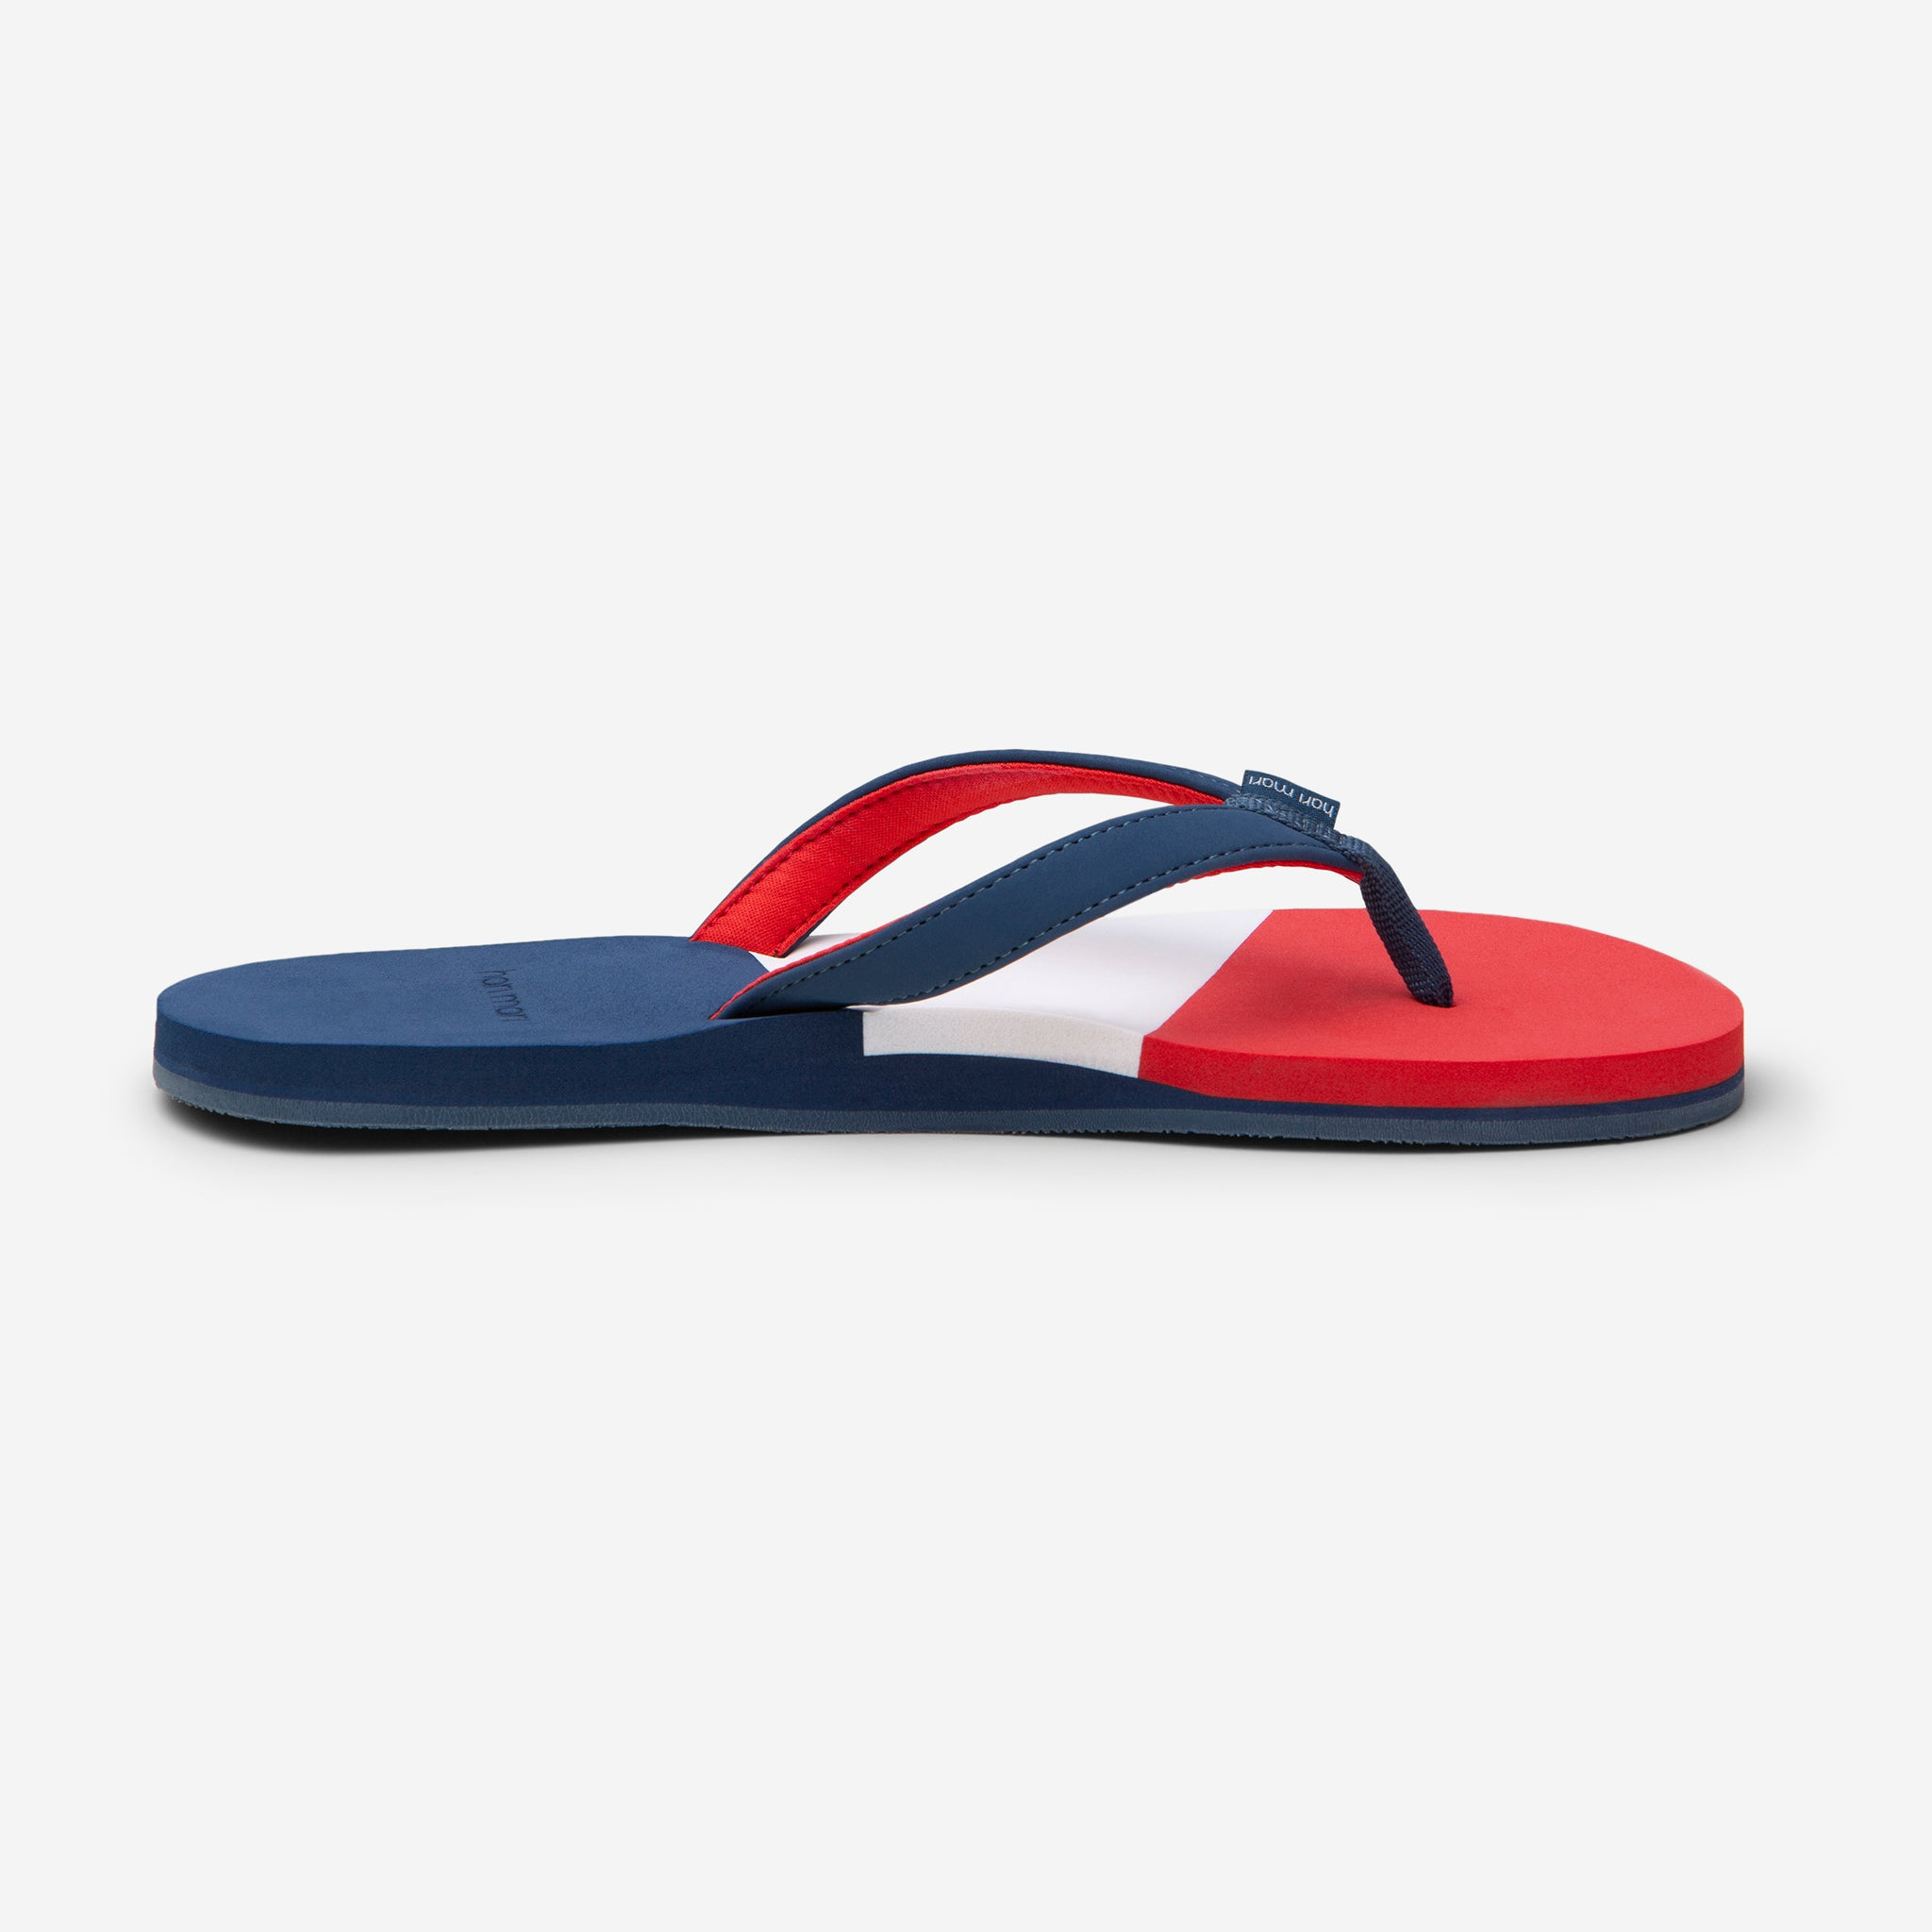 side profile of Hari Mari Women's Meadows Asana Flip Flops in Navy/Red/Lily on white background